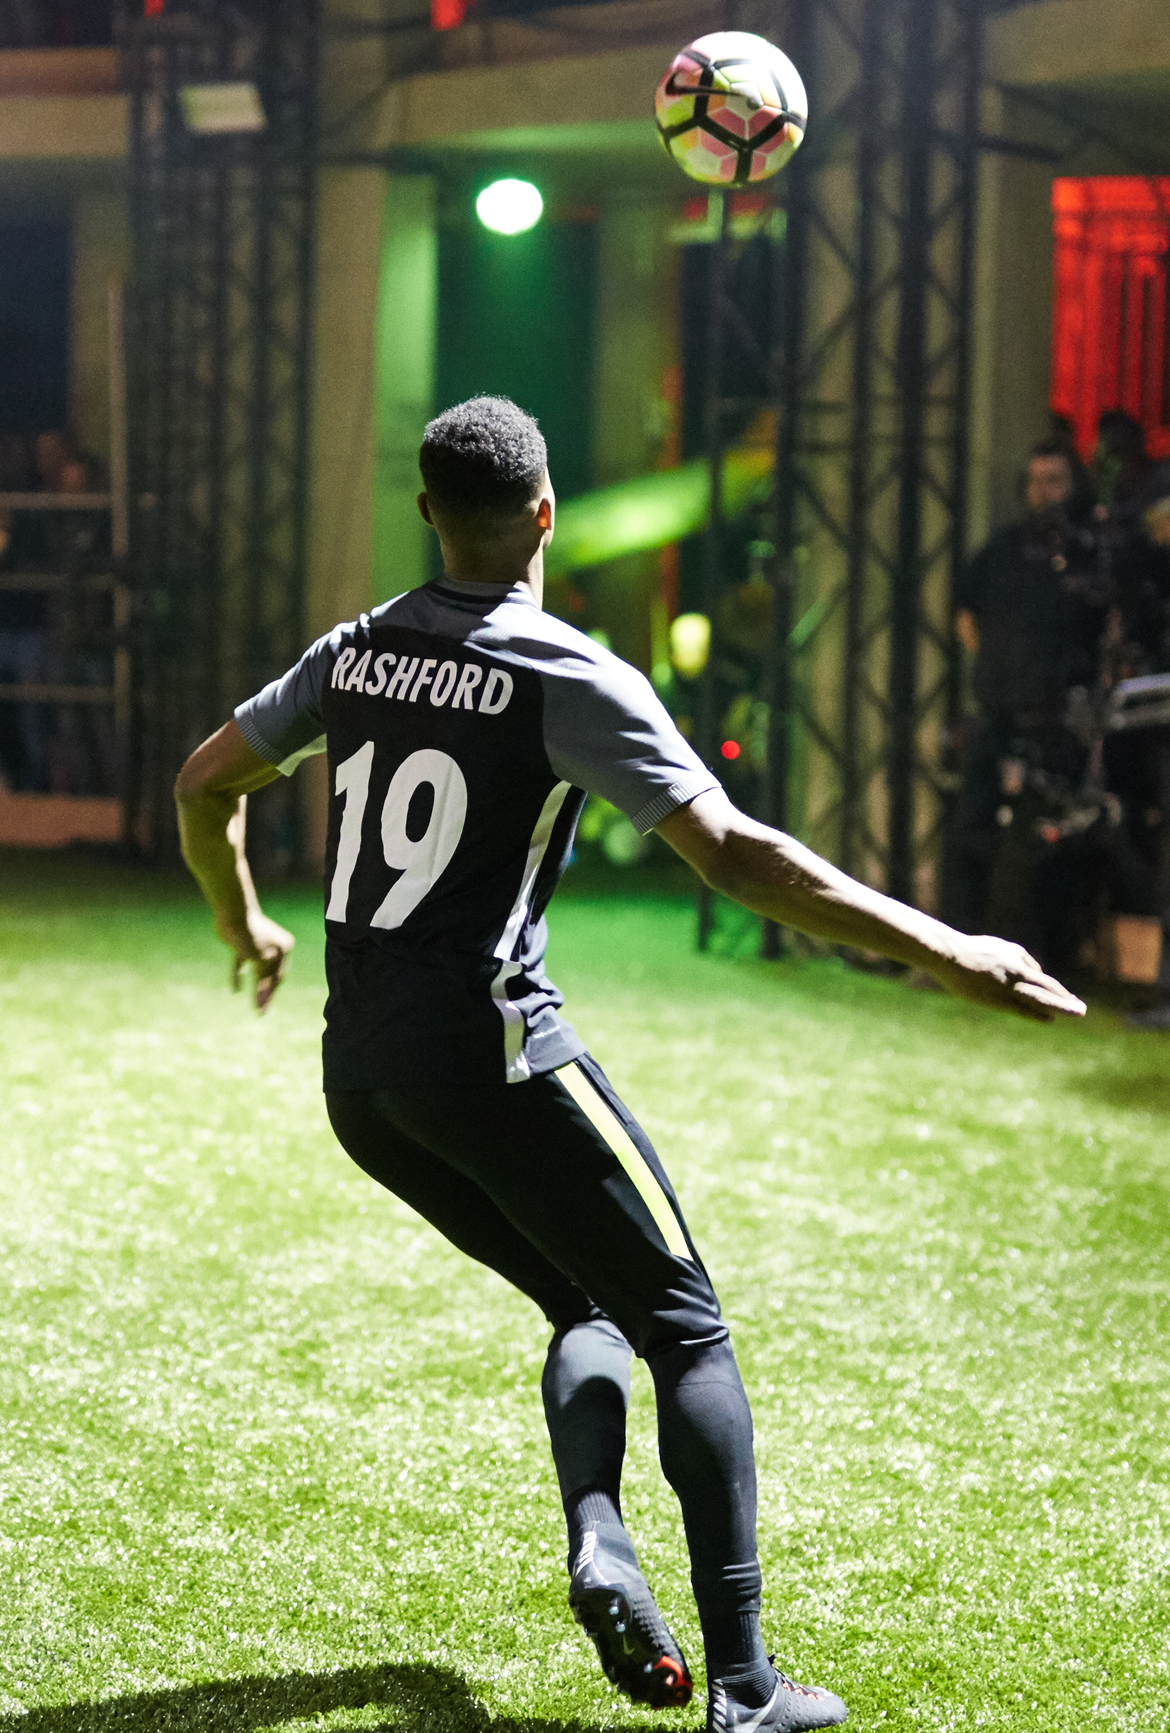 nike_strikenight_rashford3.jpg